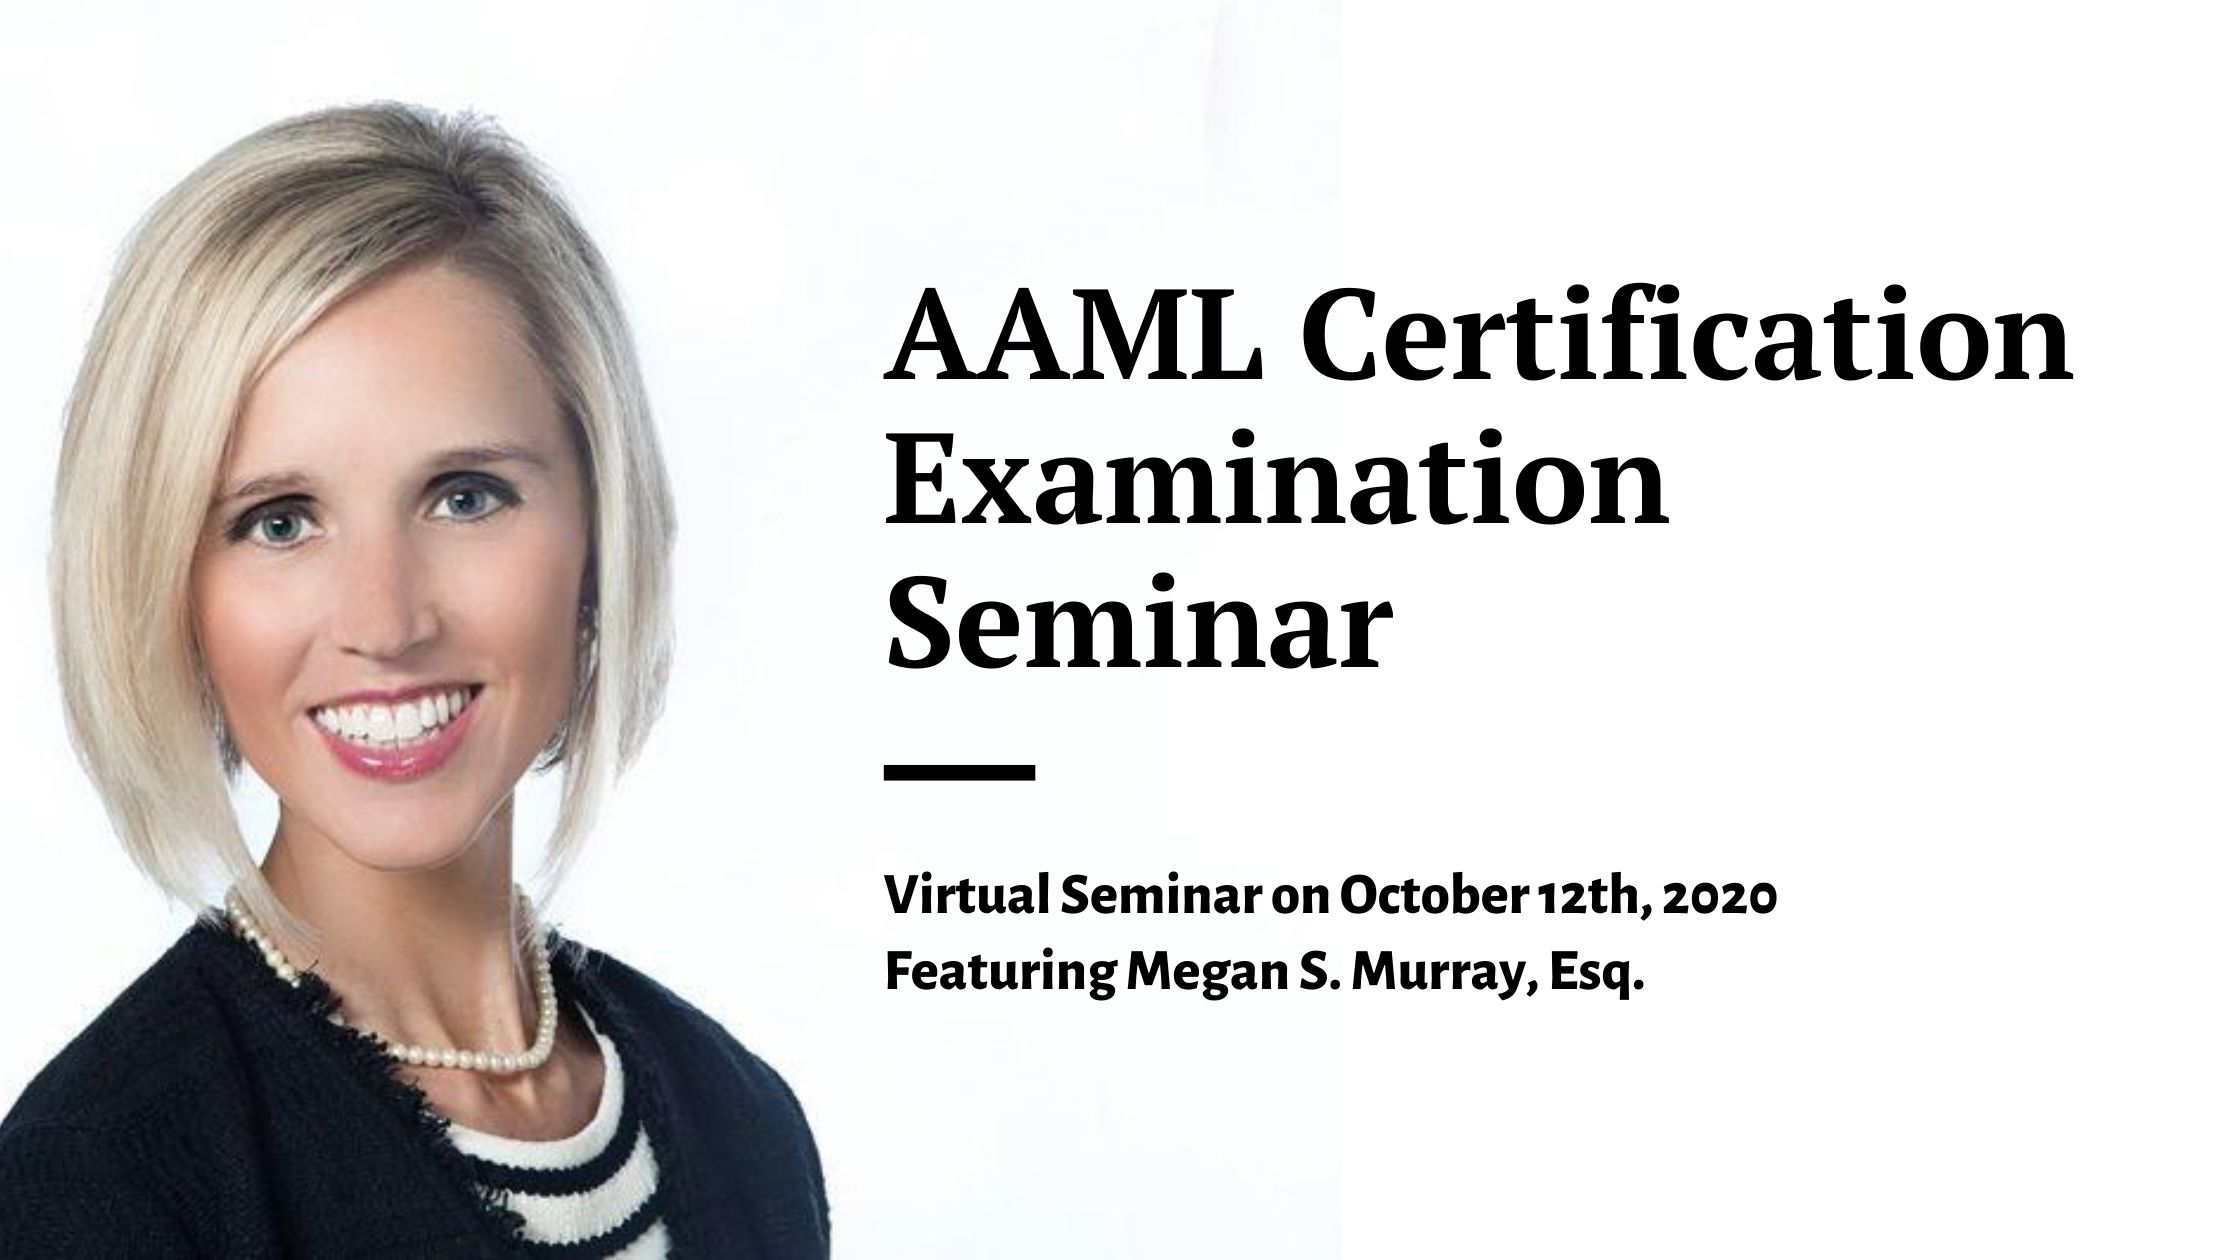 Megan S. Murray, Esq. will be a featured speaker at the AAML Certification Examination Seminar on October 12, 2020.